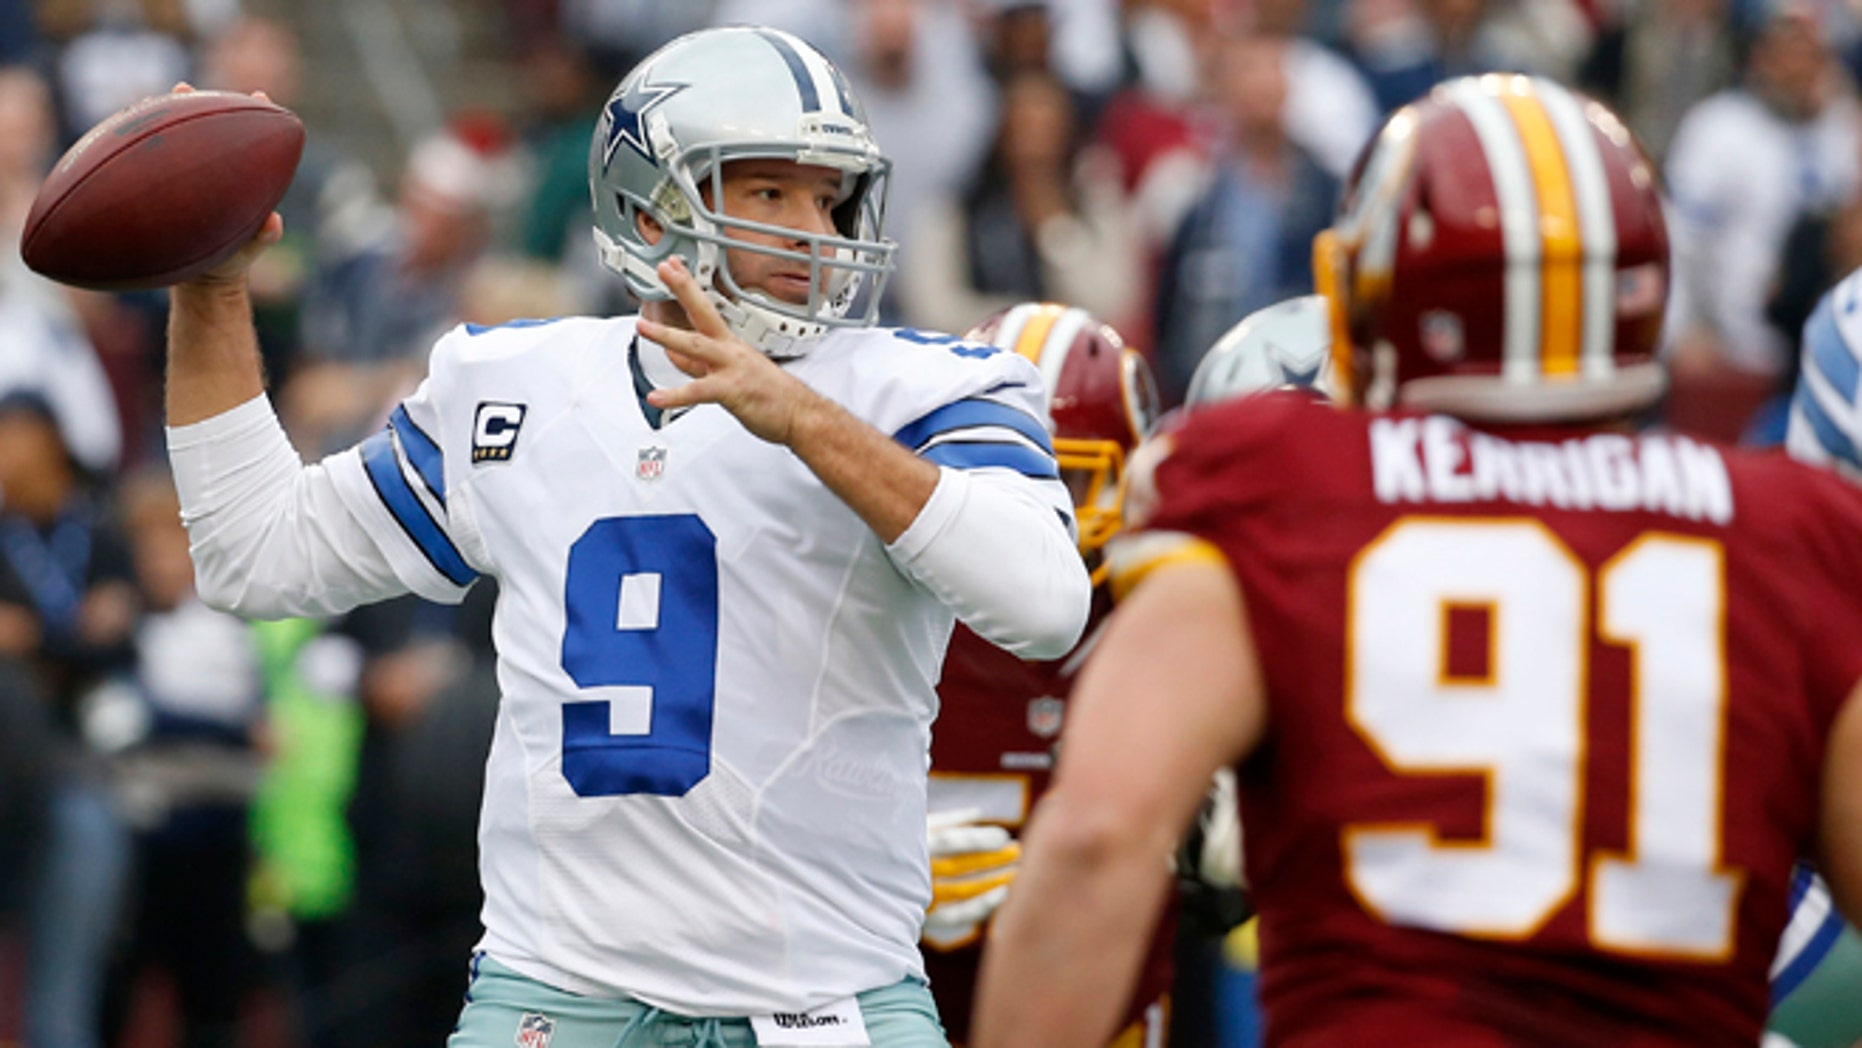 Dallas Cowboys quarterback Tony Romo (9) passes the ball during the first half of an NFL football game against the Washington Redskins in Landover, Md., Sunday, Dec. 28, 2014. (AP Photo/Alex Brandon)